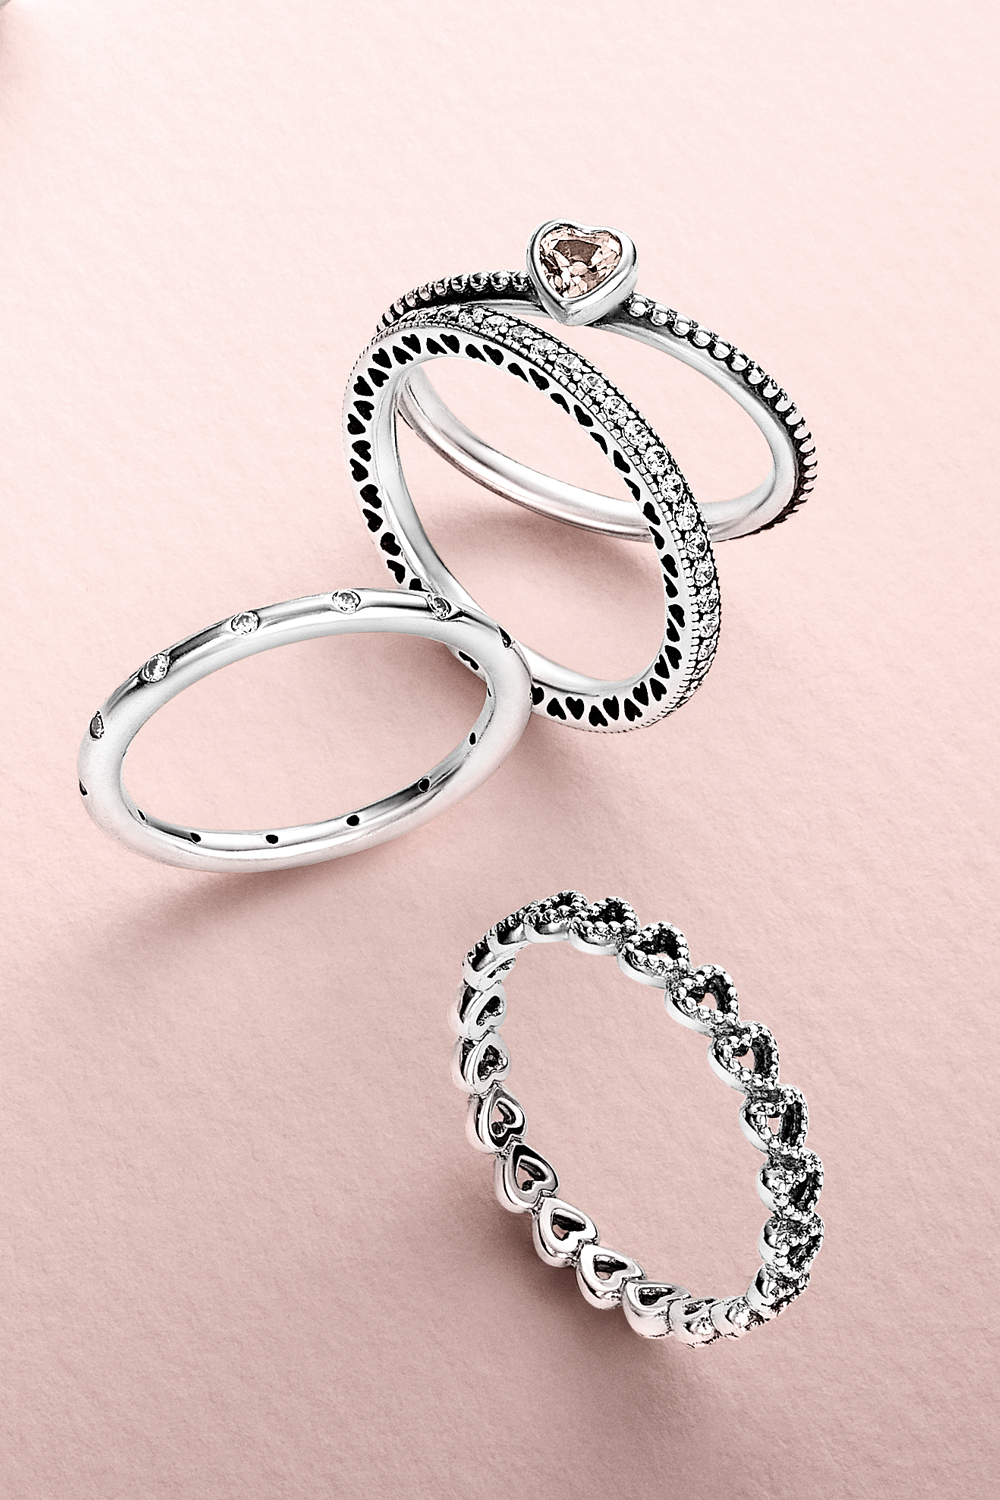 Create A Romantic Lookstacking Cute Heart Shaped Rings (View 14 of 25)